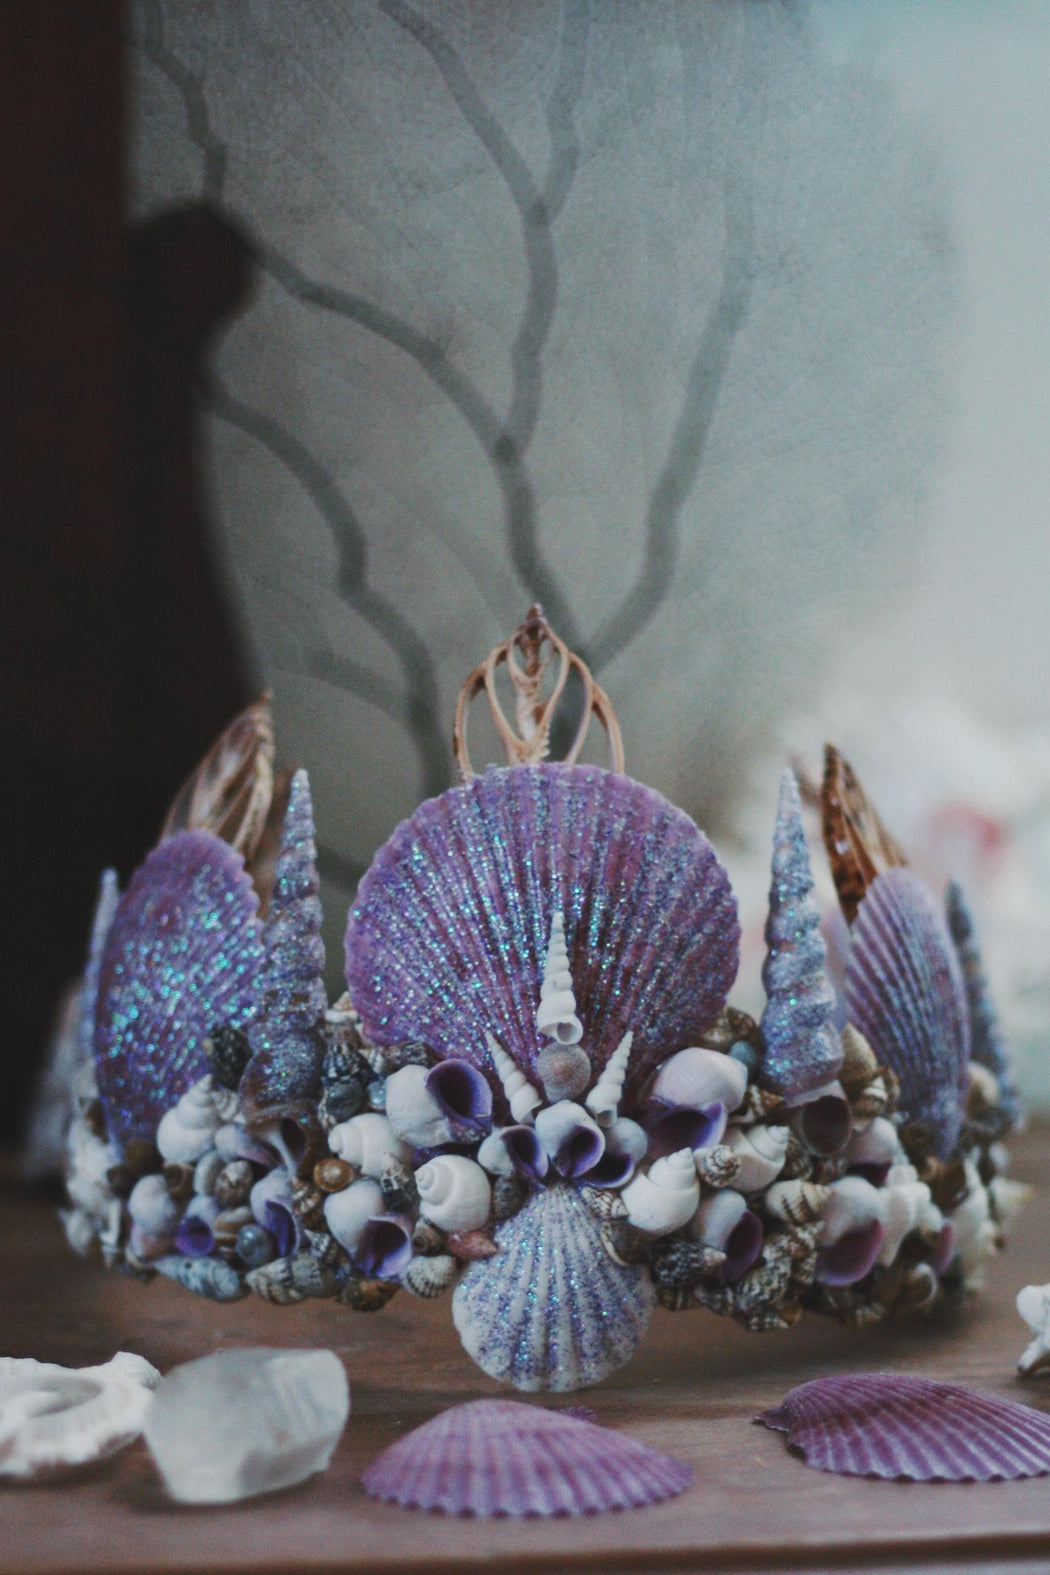 Casting Spells Mermaid Crown - Wild & Free Jewelry